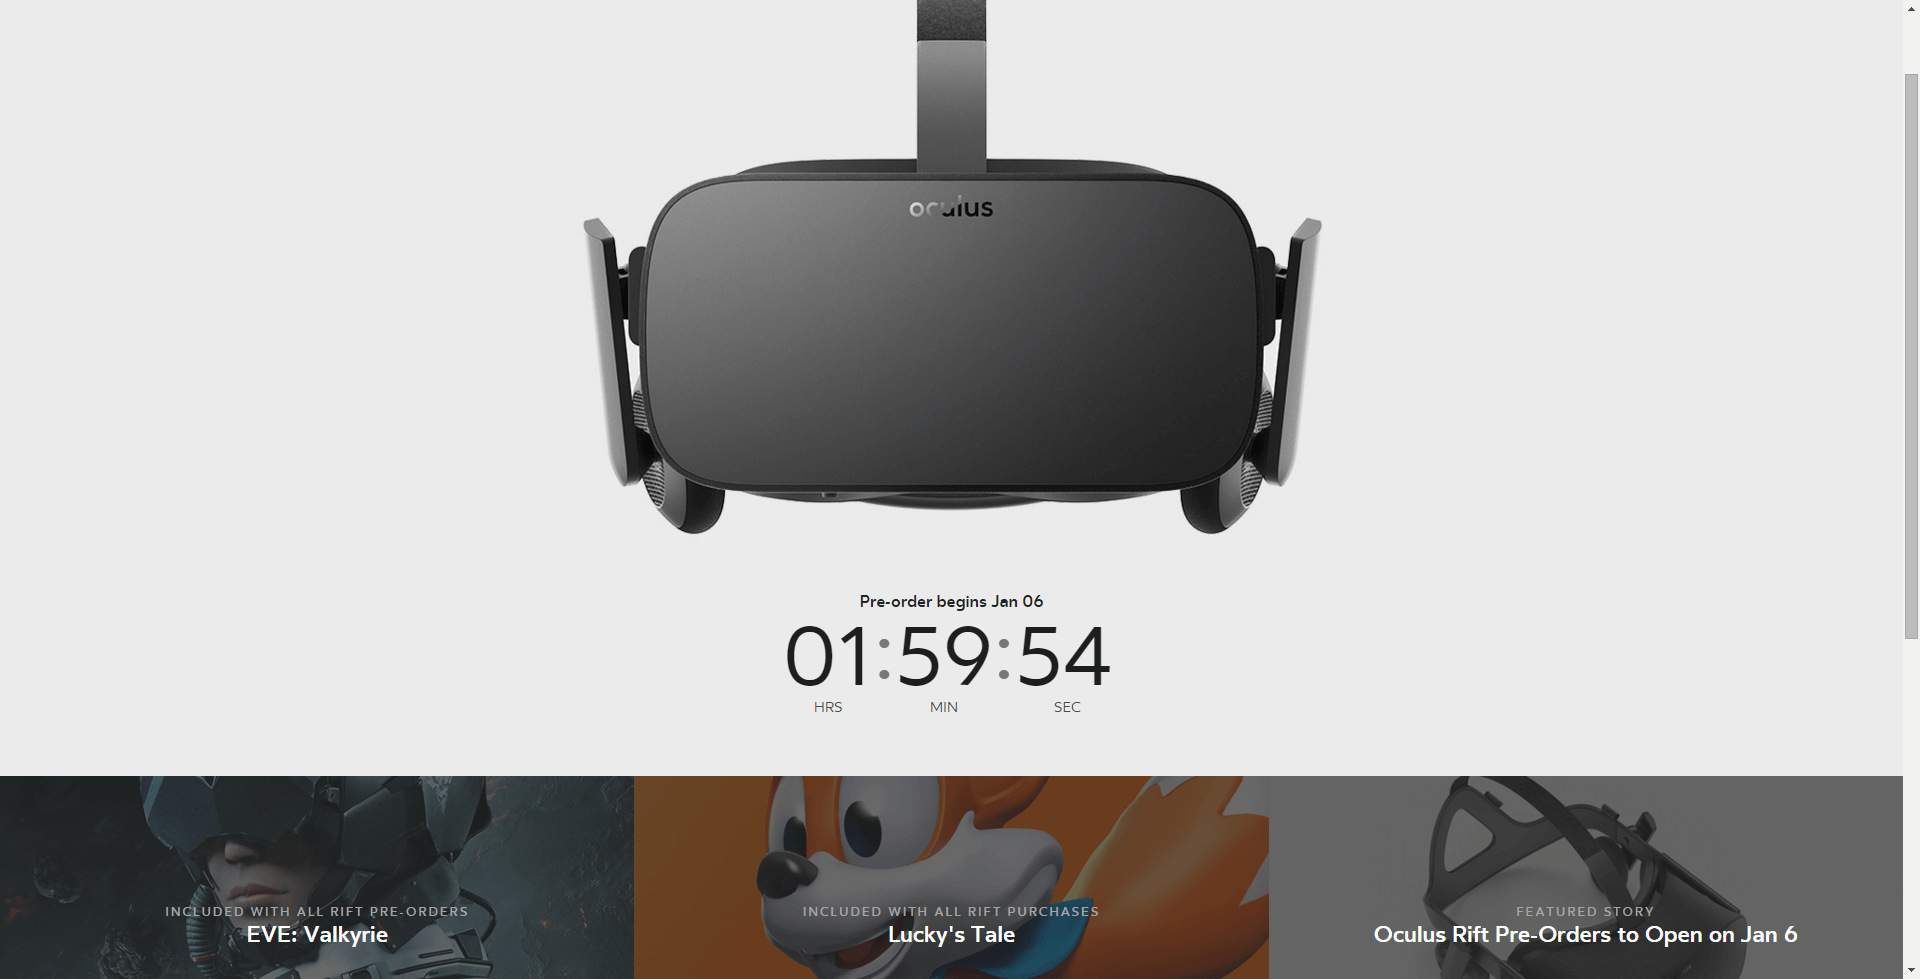 Just two hours to order an Oculus Rift!